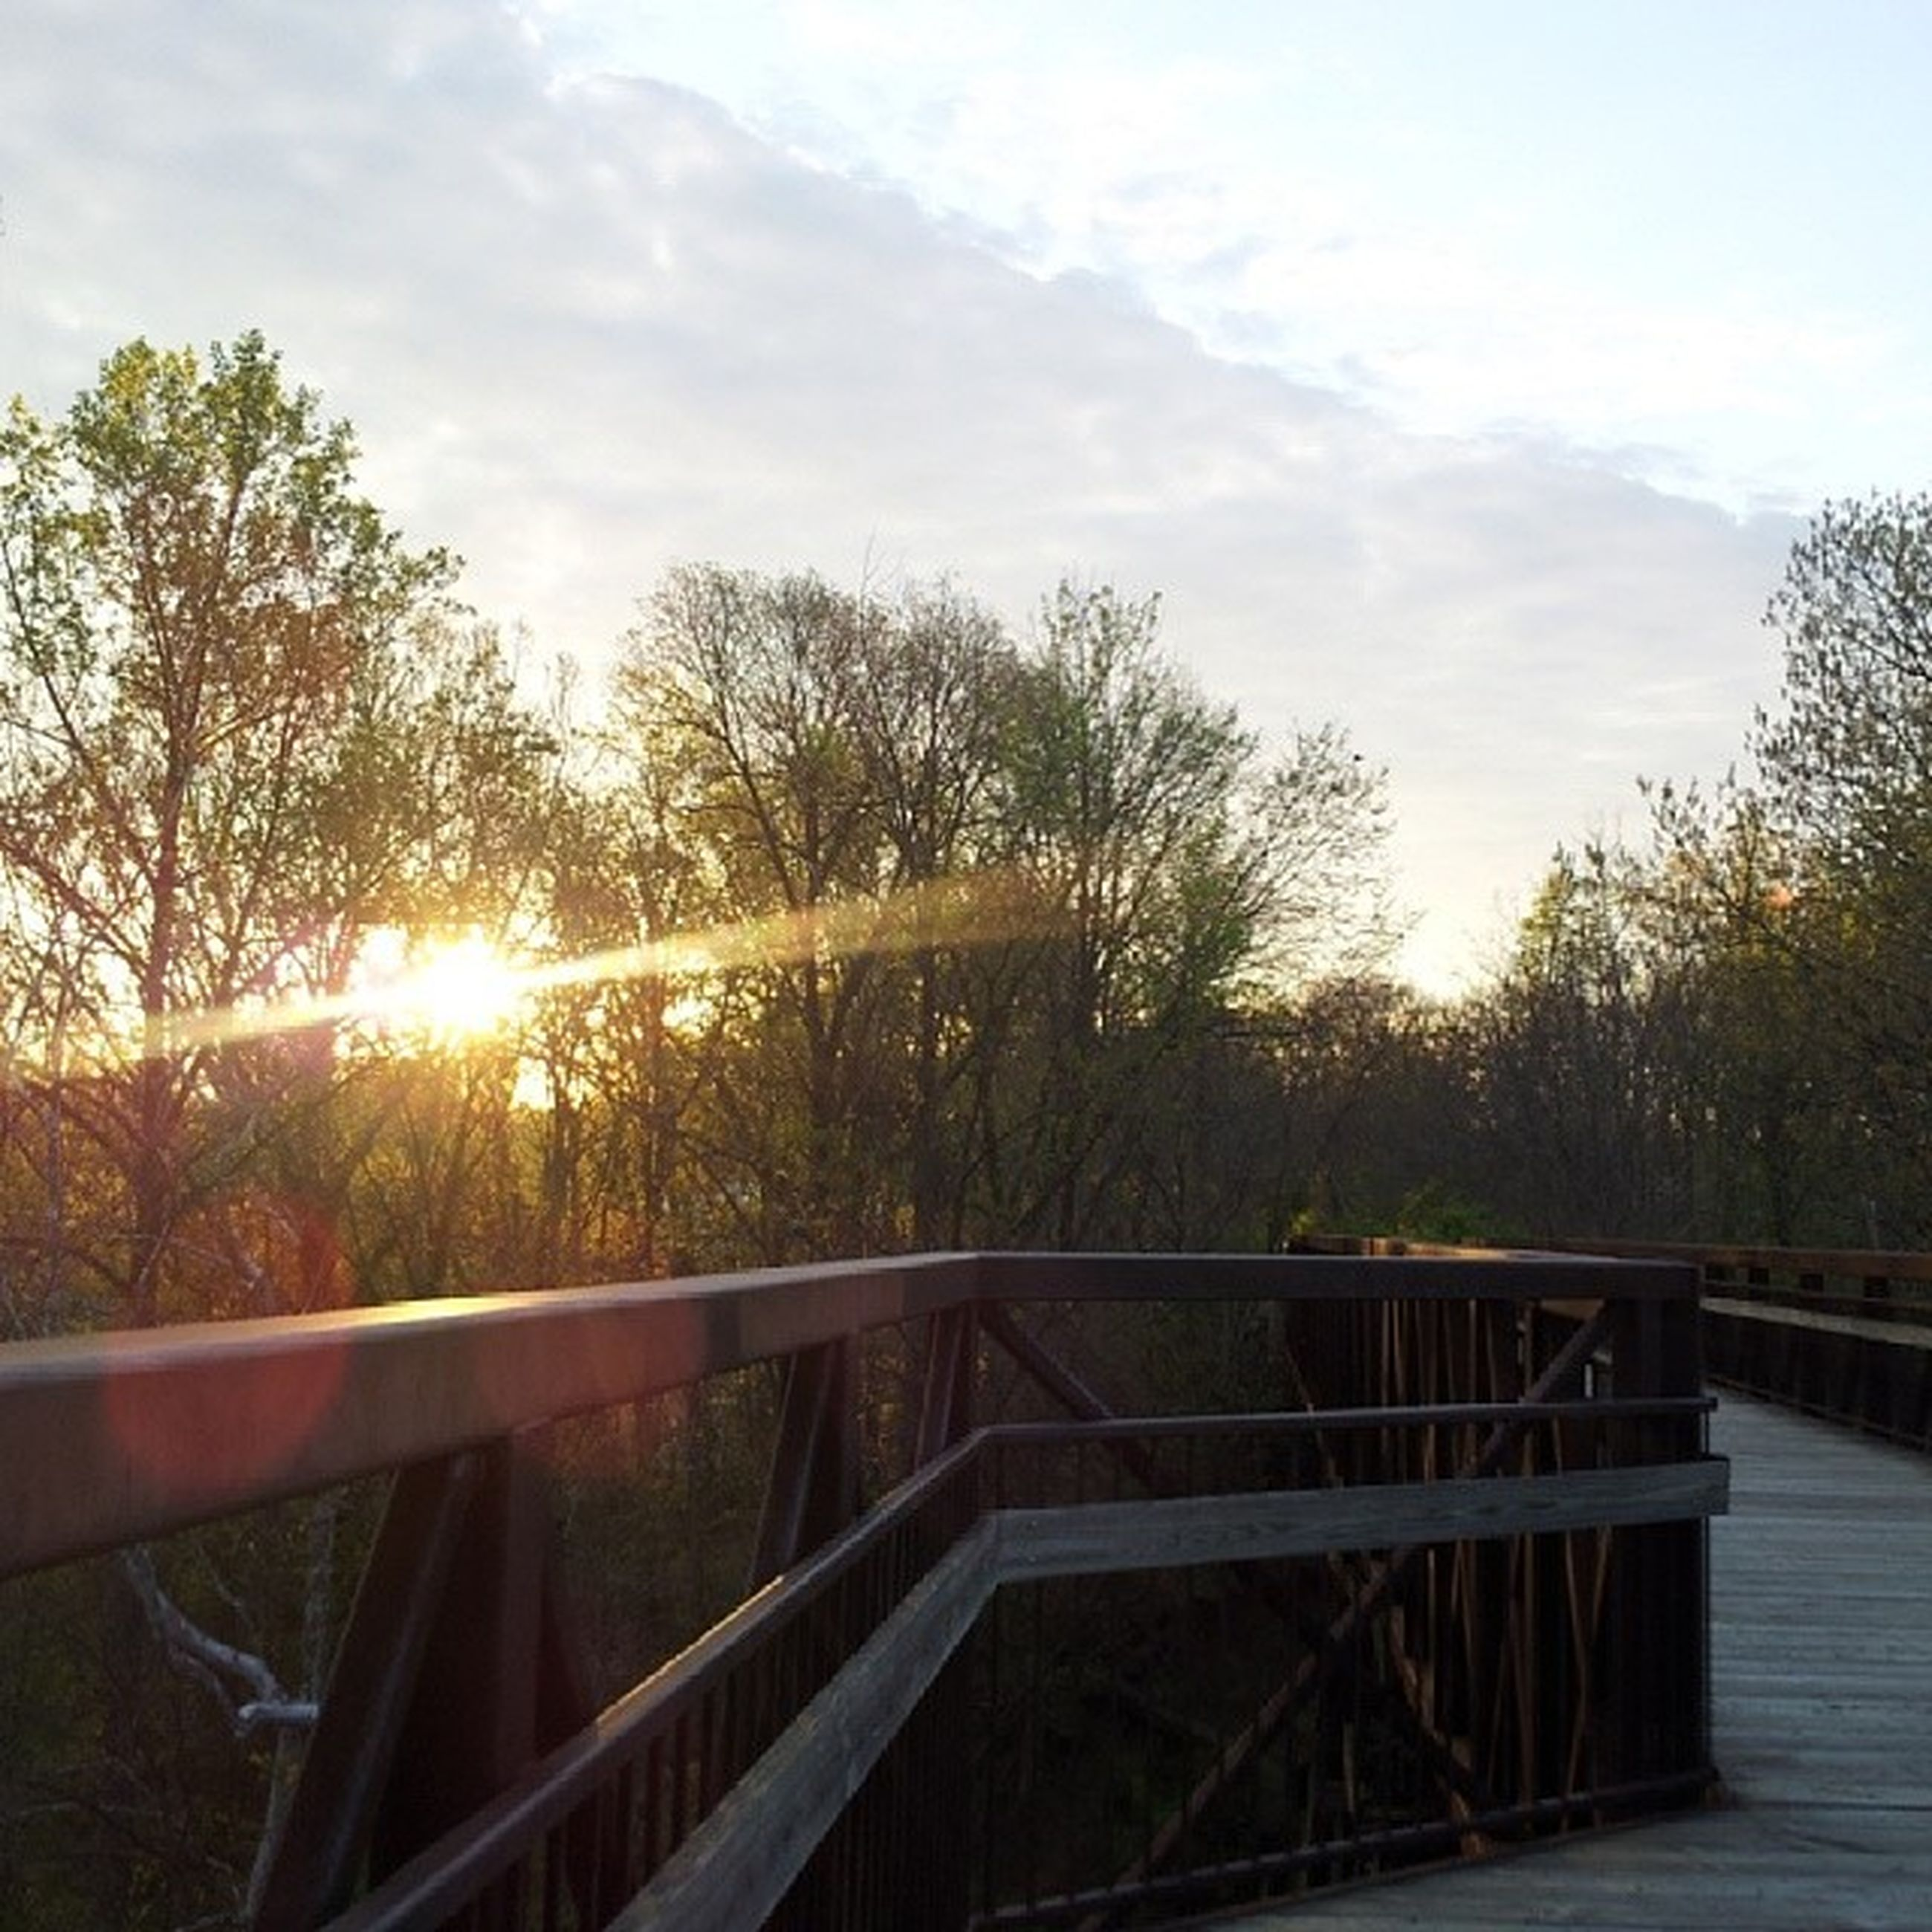 railing, tree, sun, sunlight, sky, sunset, sunbeam, tranquility, nature, bridge - man made structure, tranquil scene, fence, beauty in nature, lens flare, scenics, river, water, footbridge, wood - material, no people